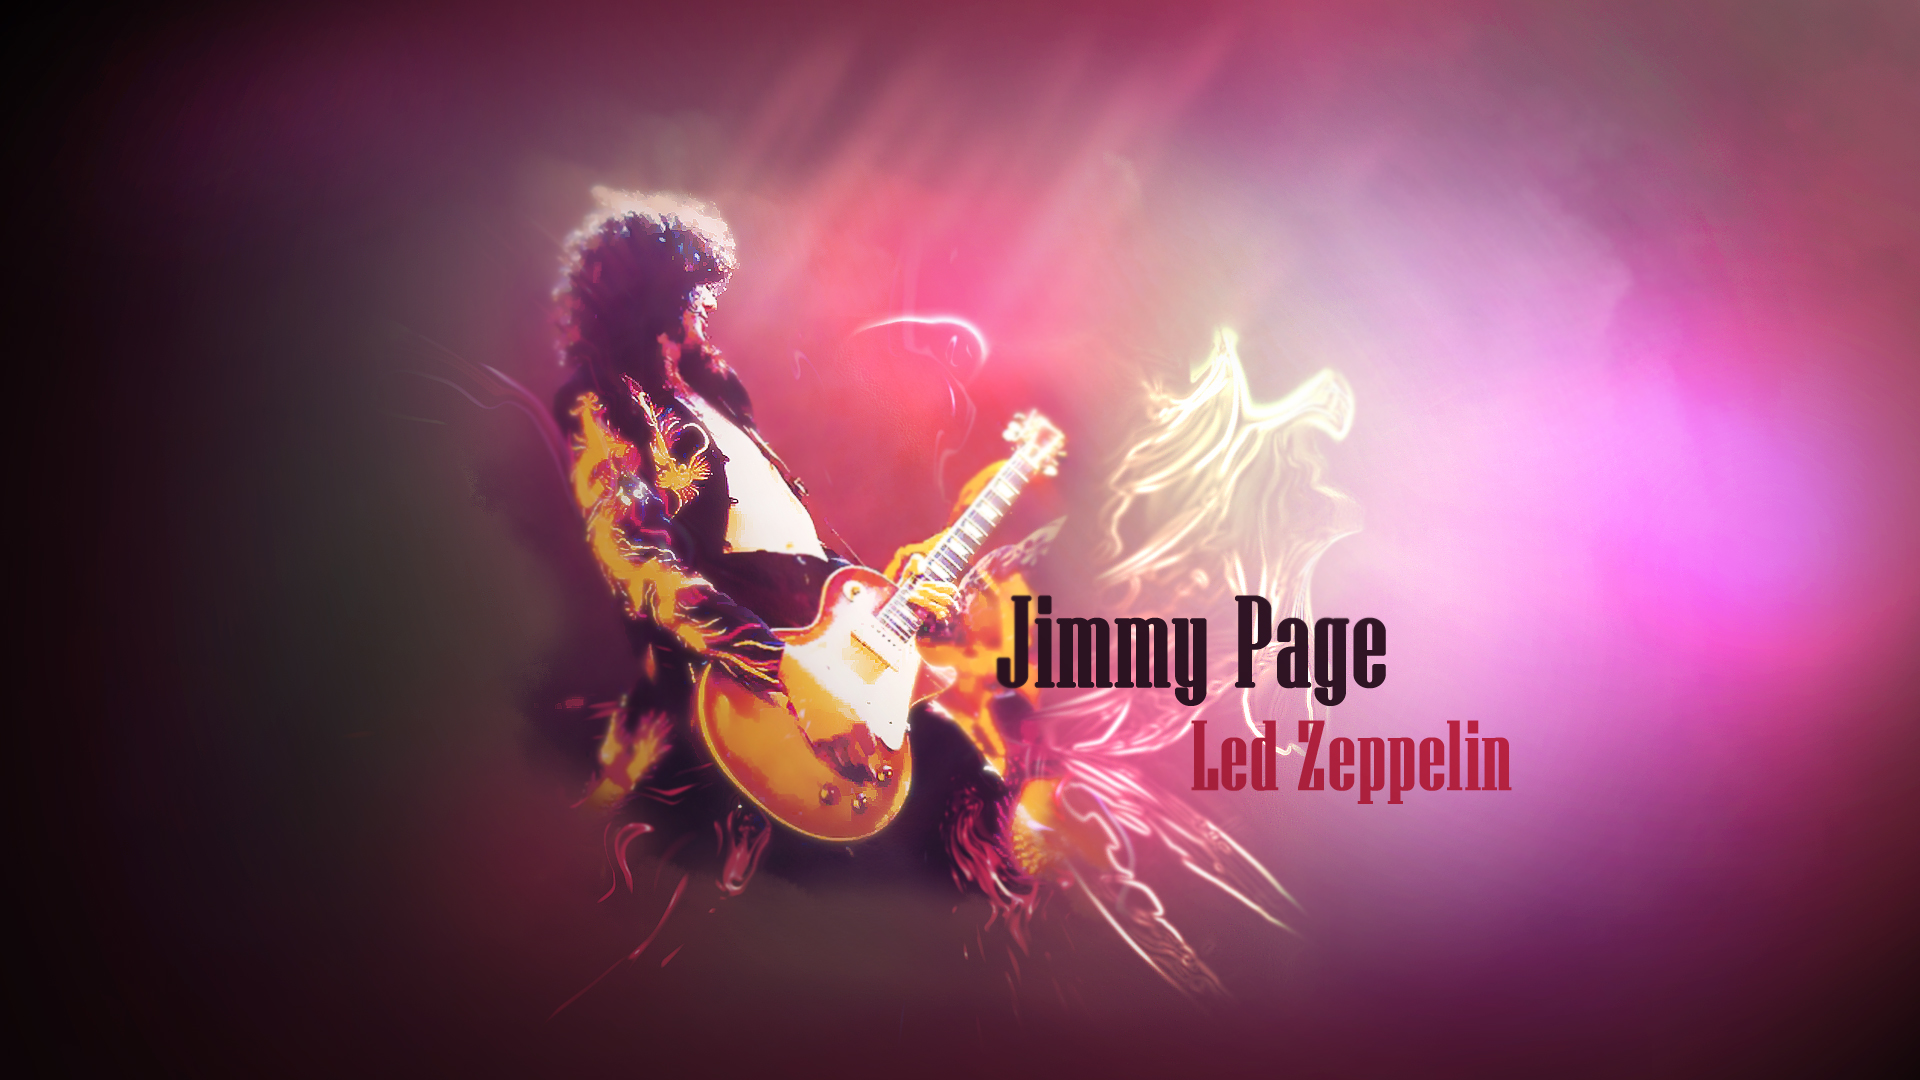 Jimmy Page images Jimmy Page HD wallpaper and background photos 1920x1080